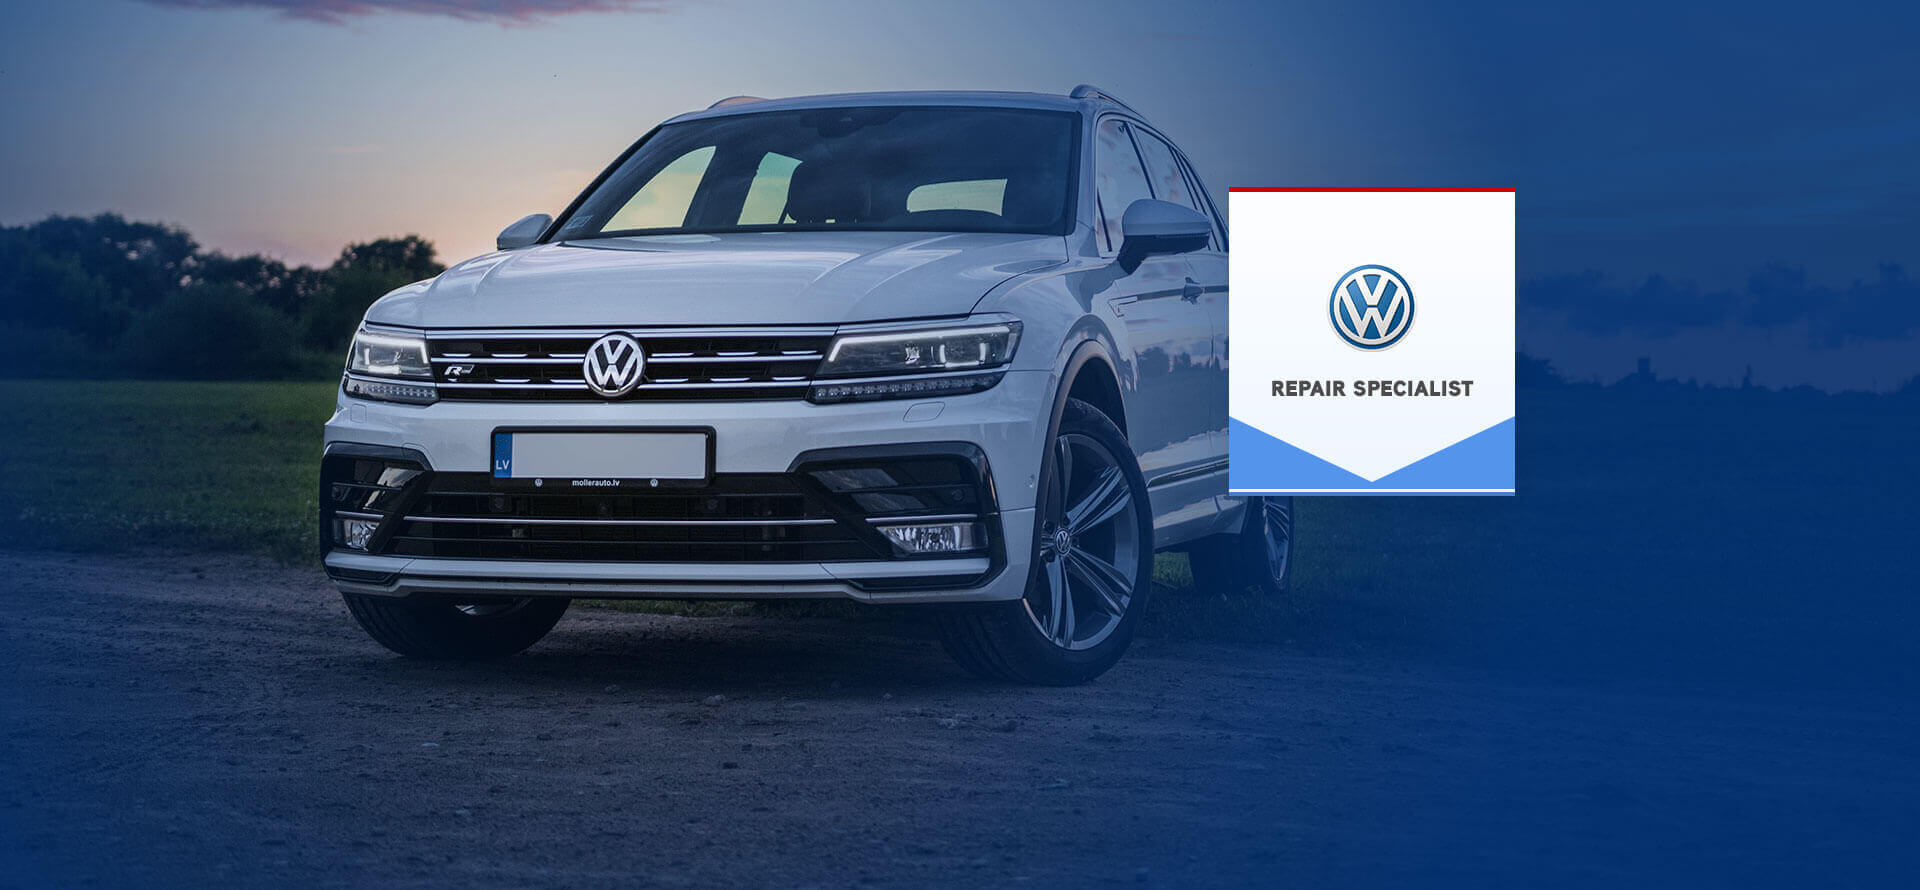 Vw Specialist Near Me >> Vw Service Melbourne Volkswagen Mechanic Timing Belt Brakes